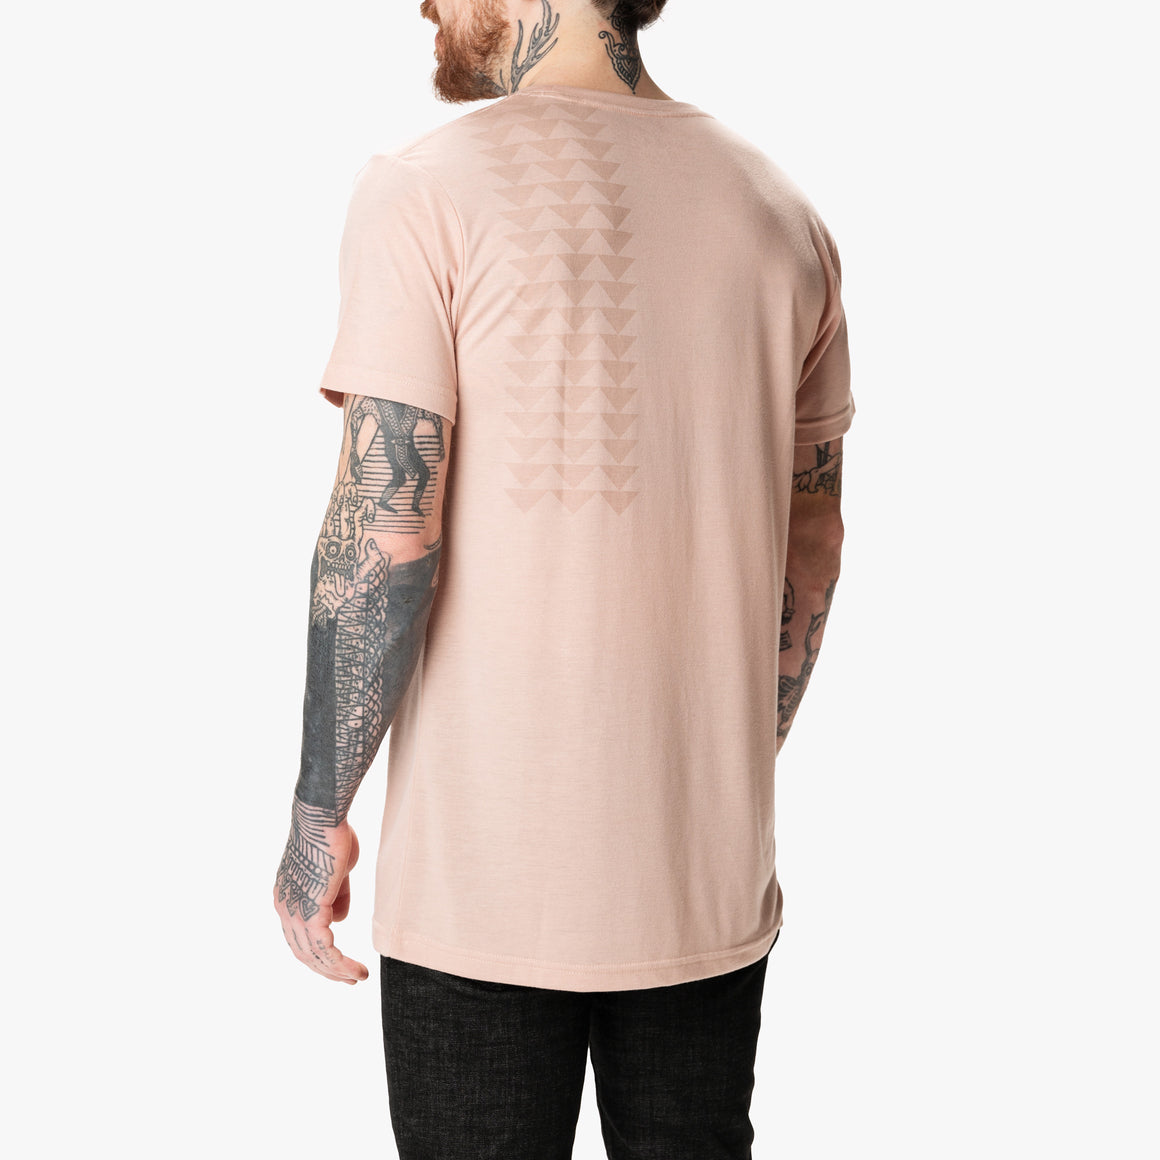 Nakoa Tee - Dirty Pink